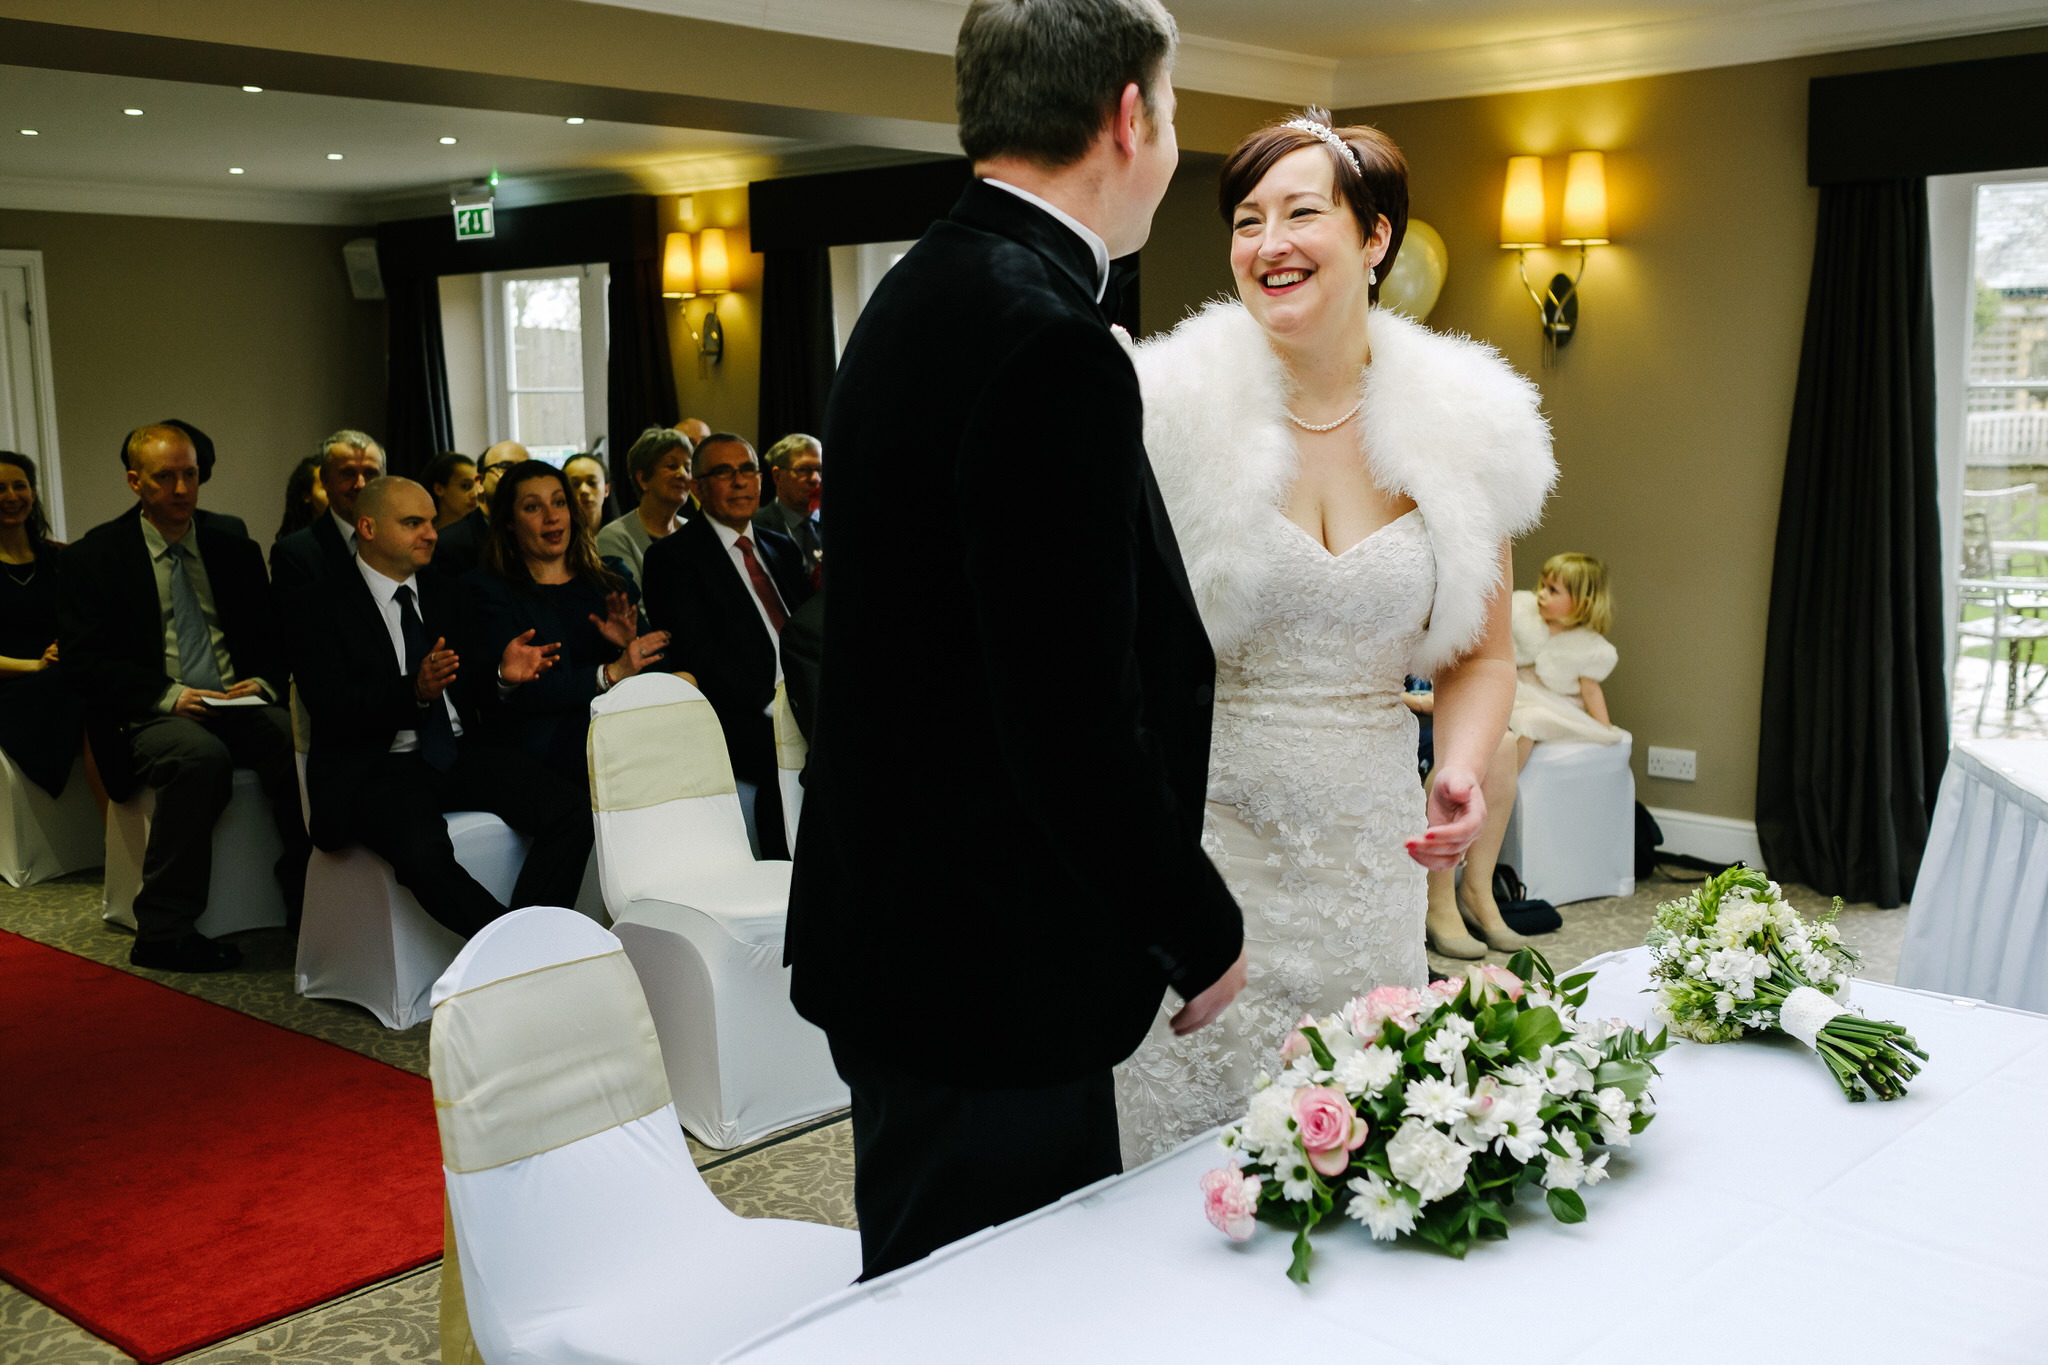 A bride and groom smiling at their wedding at Wroxton House Hotel, Banbury